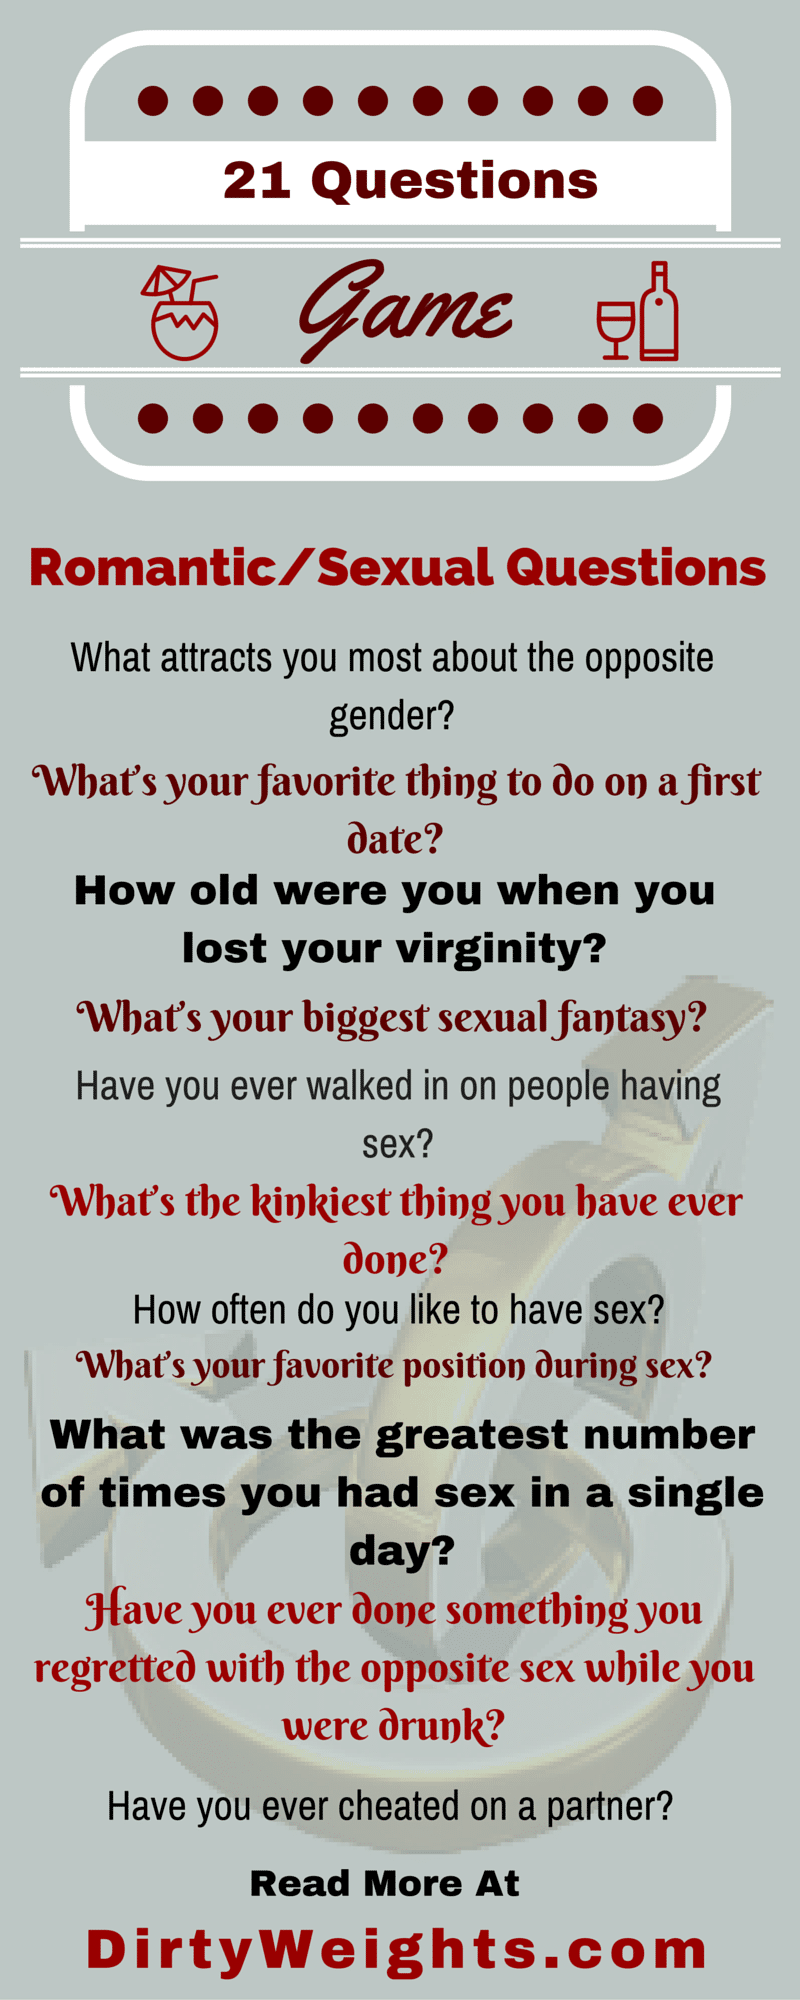 Sex questions for a game